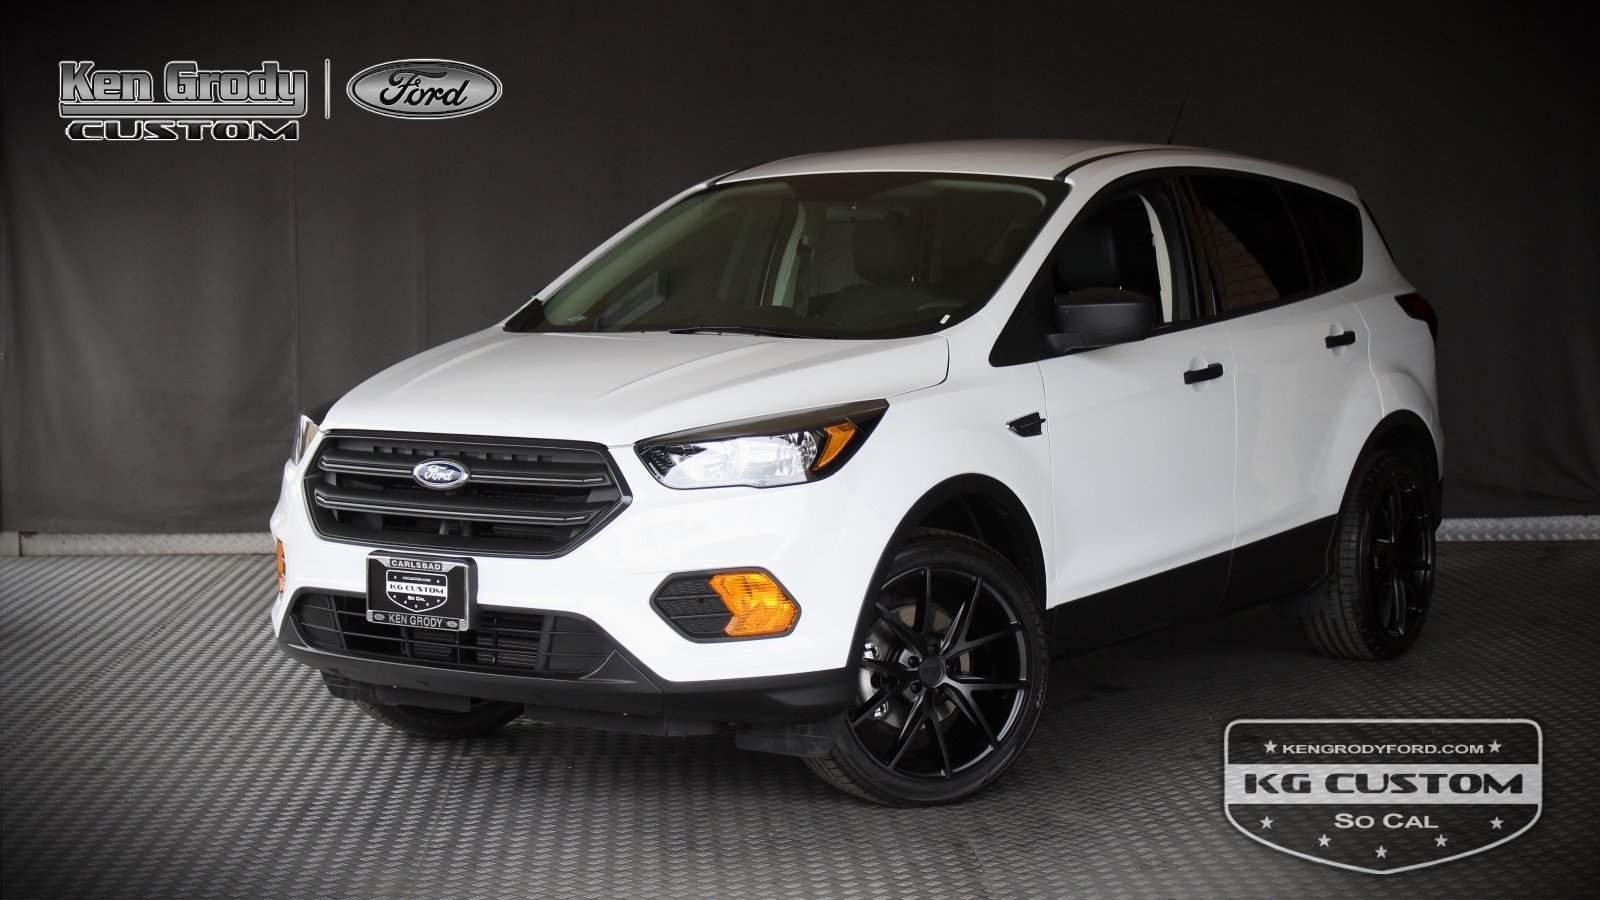 New 2019 Ford Escape KG CUSTOM